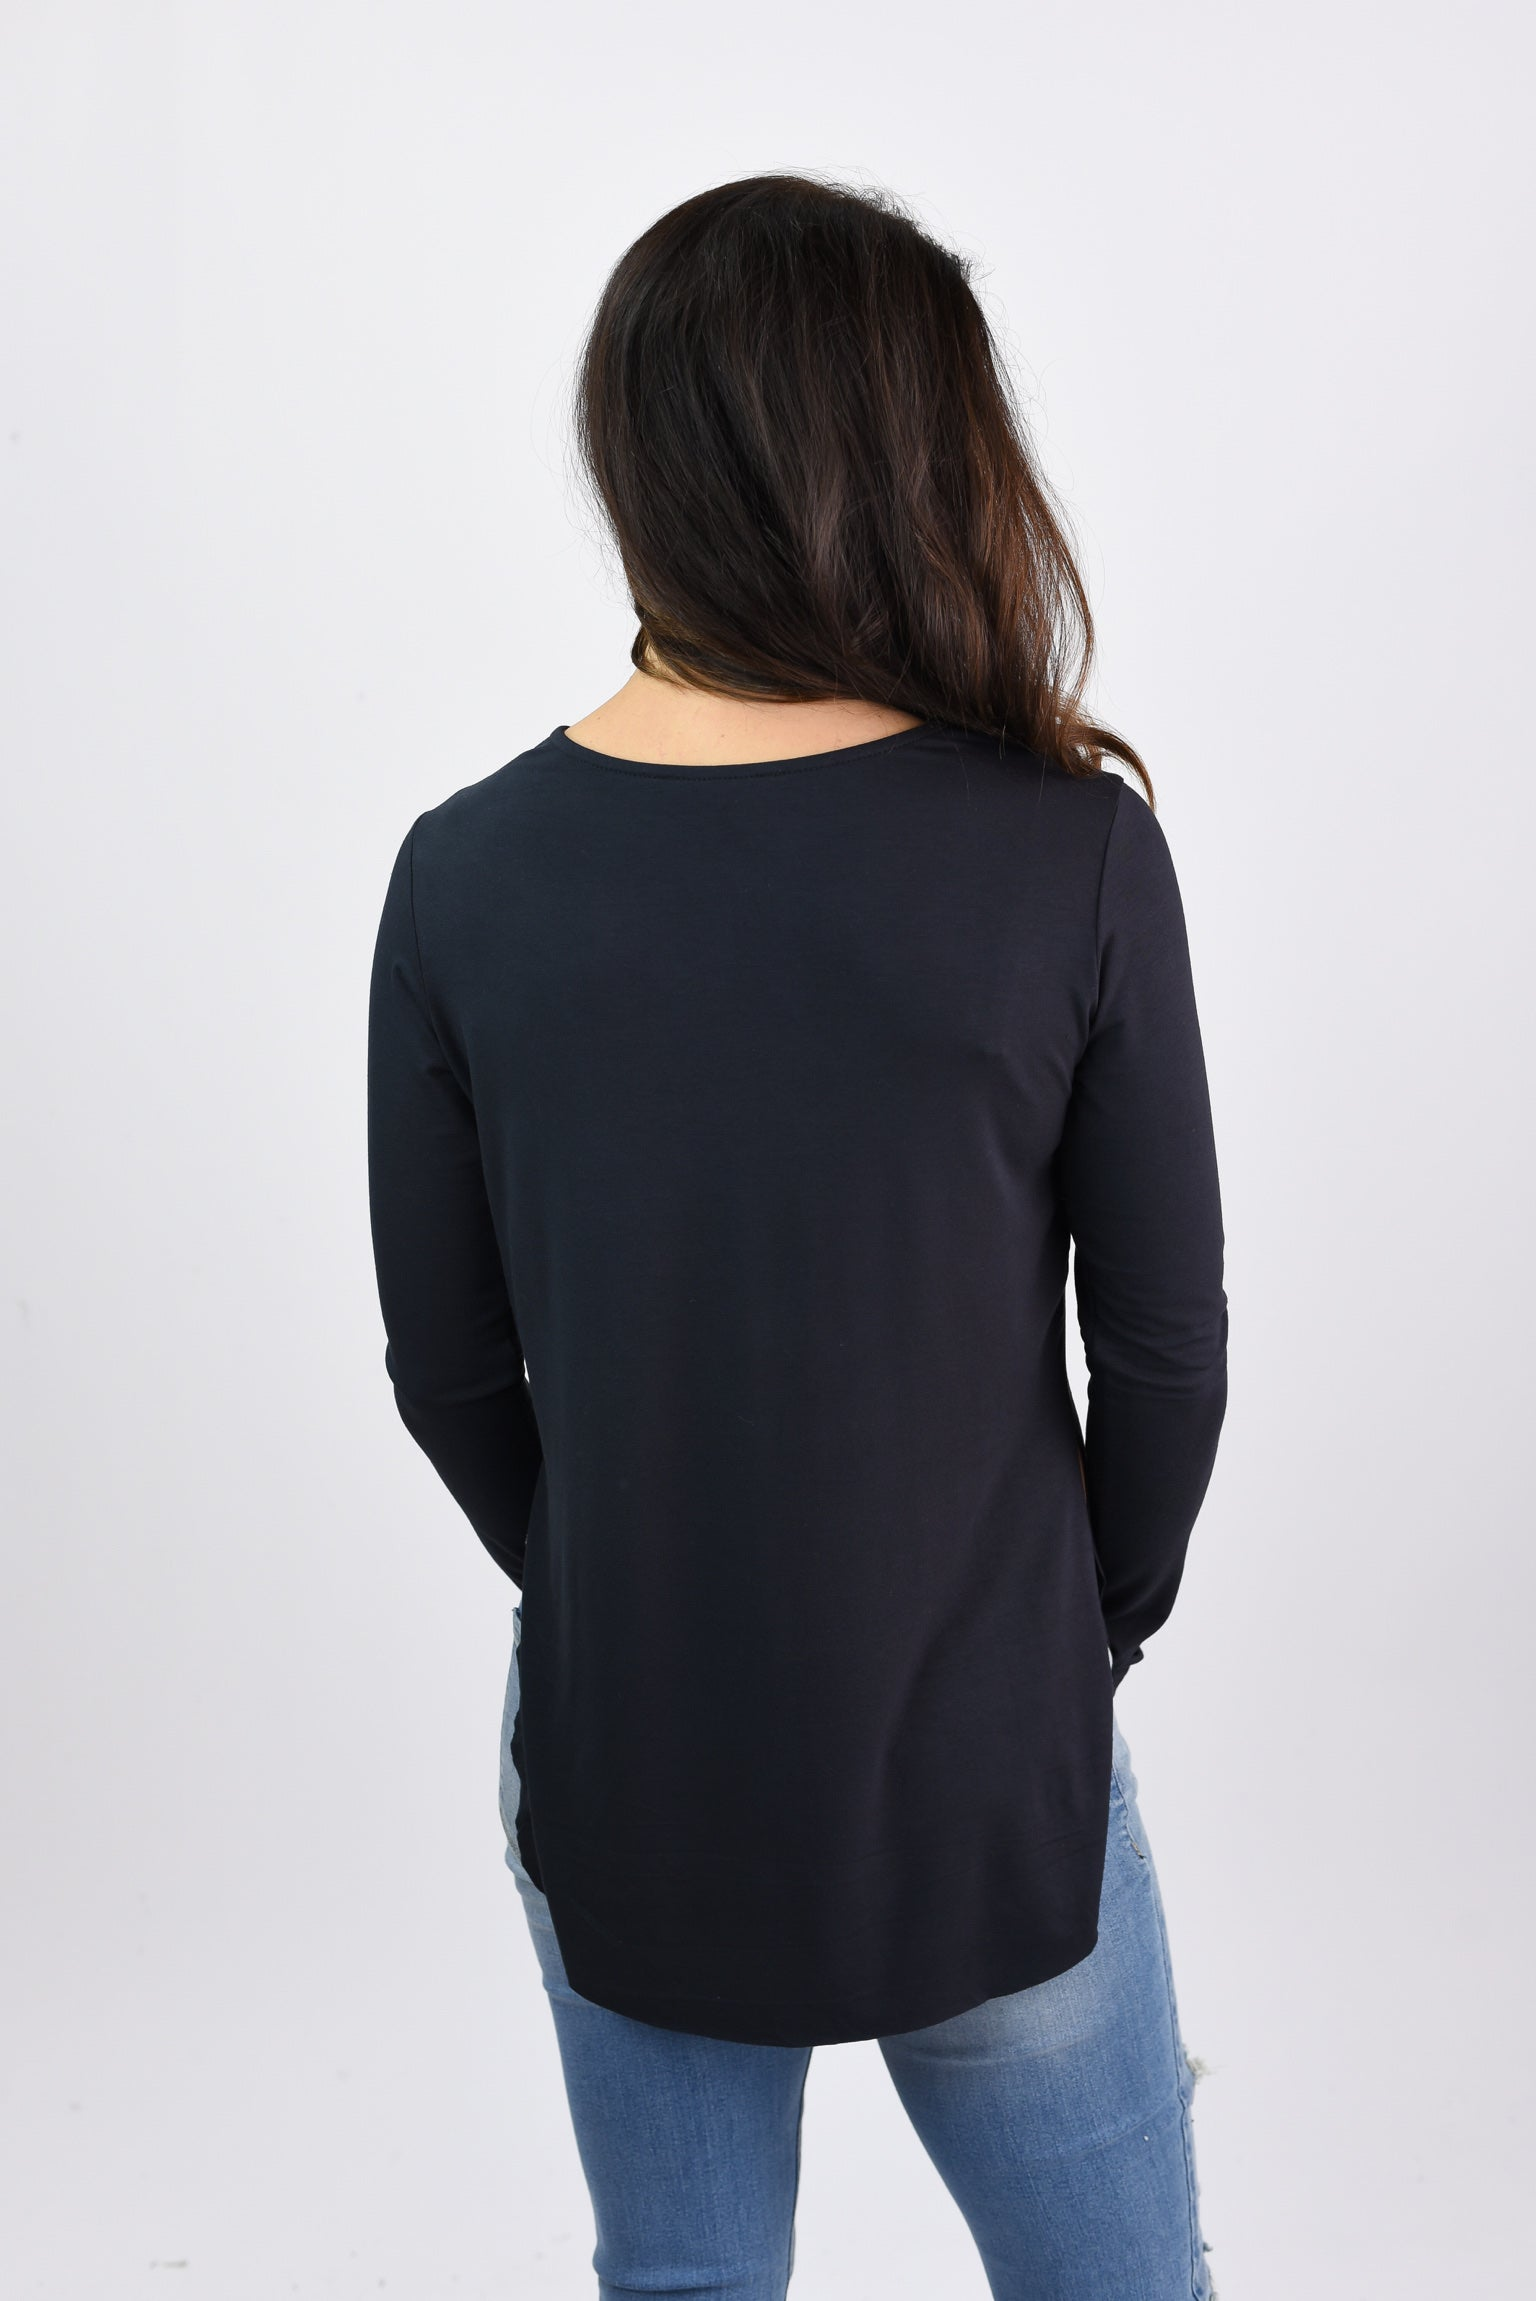 Be Enough Split Rounded Hem Long Sleeve - Black